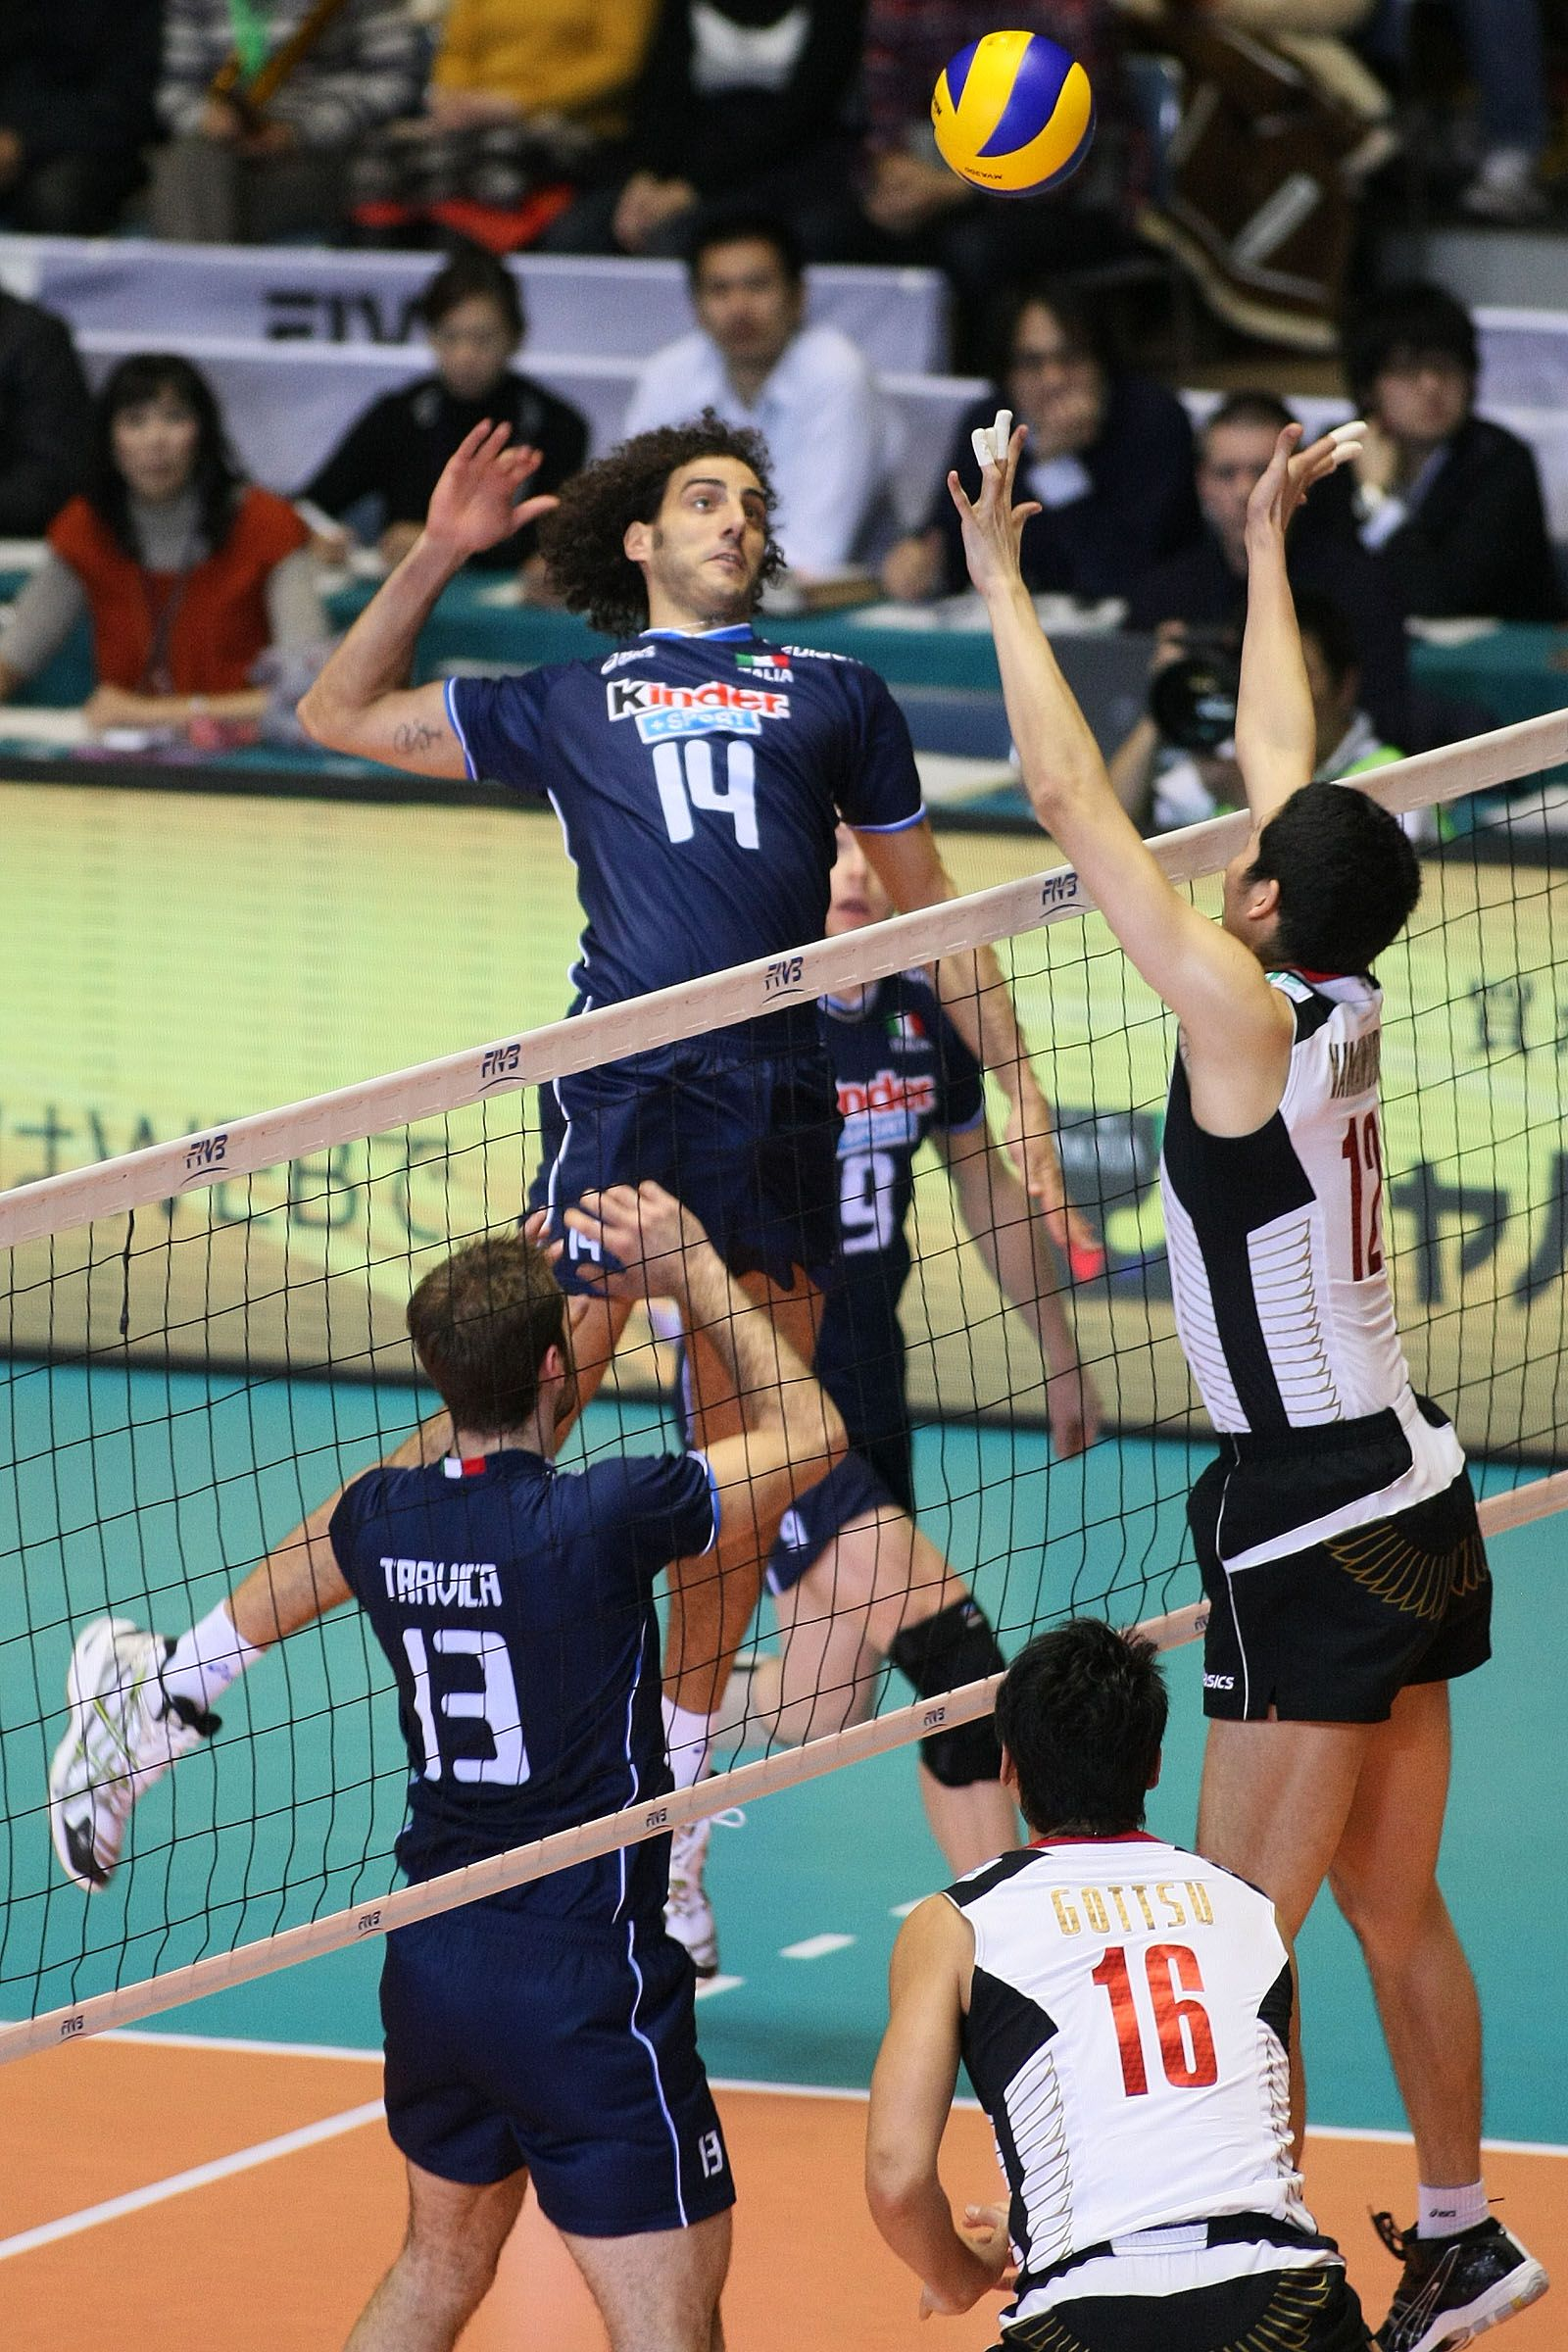 Alessandro Fei Here In Japan Playing As Middle Blocker Completes A Fast Attack Prepared By Setter Dragan Travica Volleyball Players Volleyball Athlete